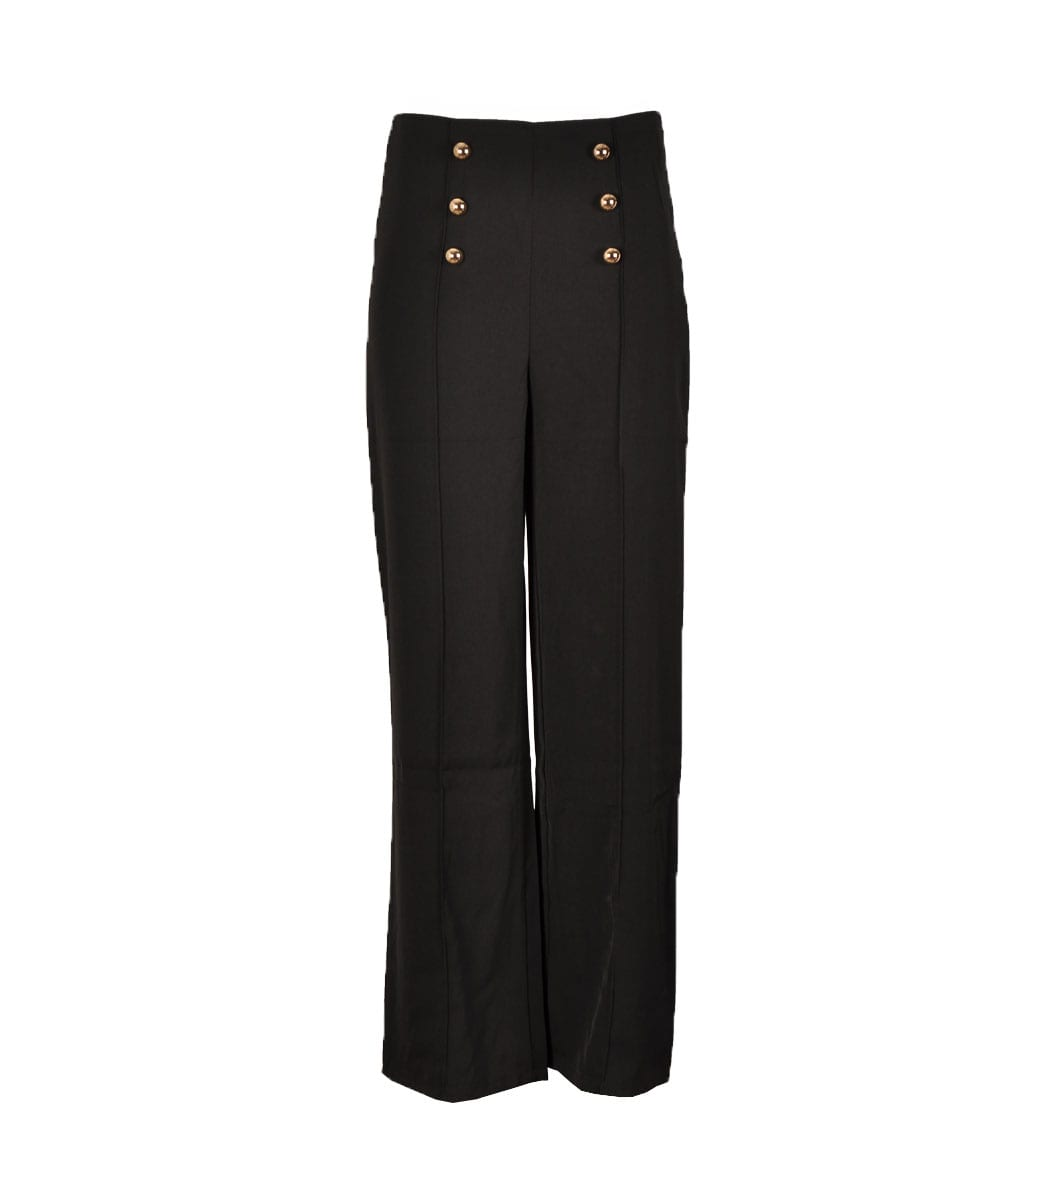 Gold button front pants